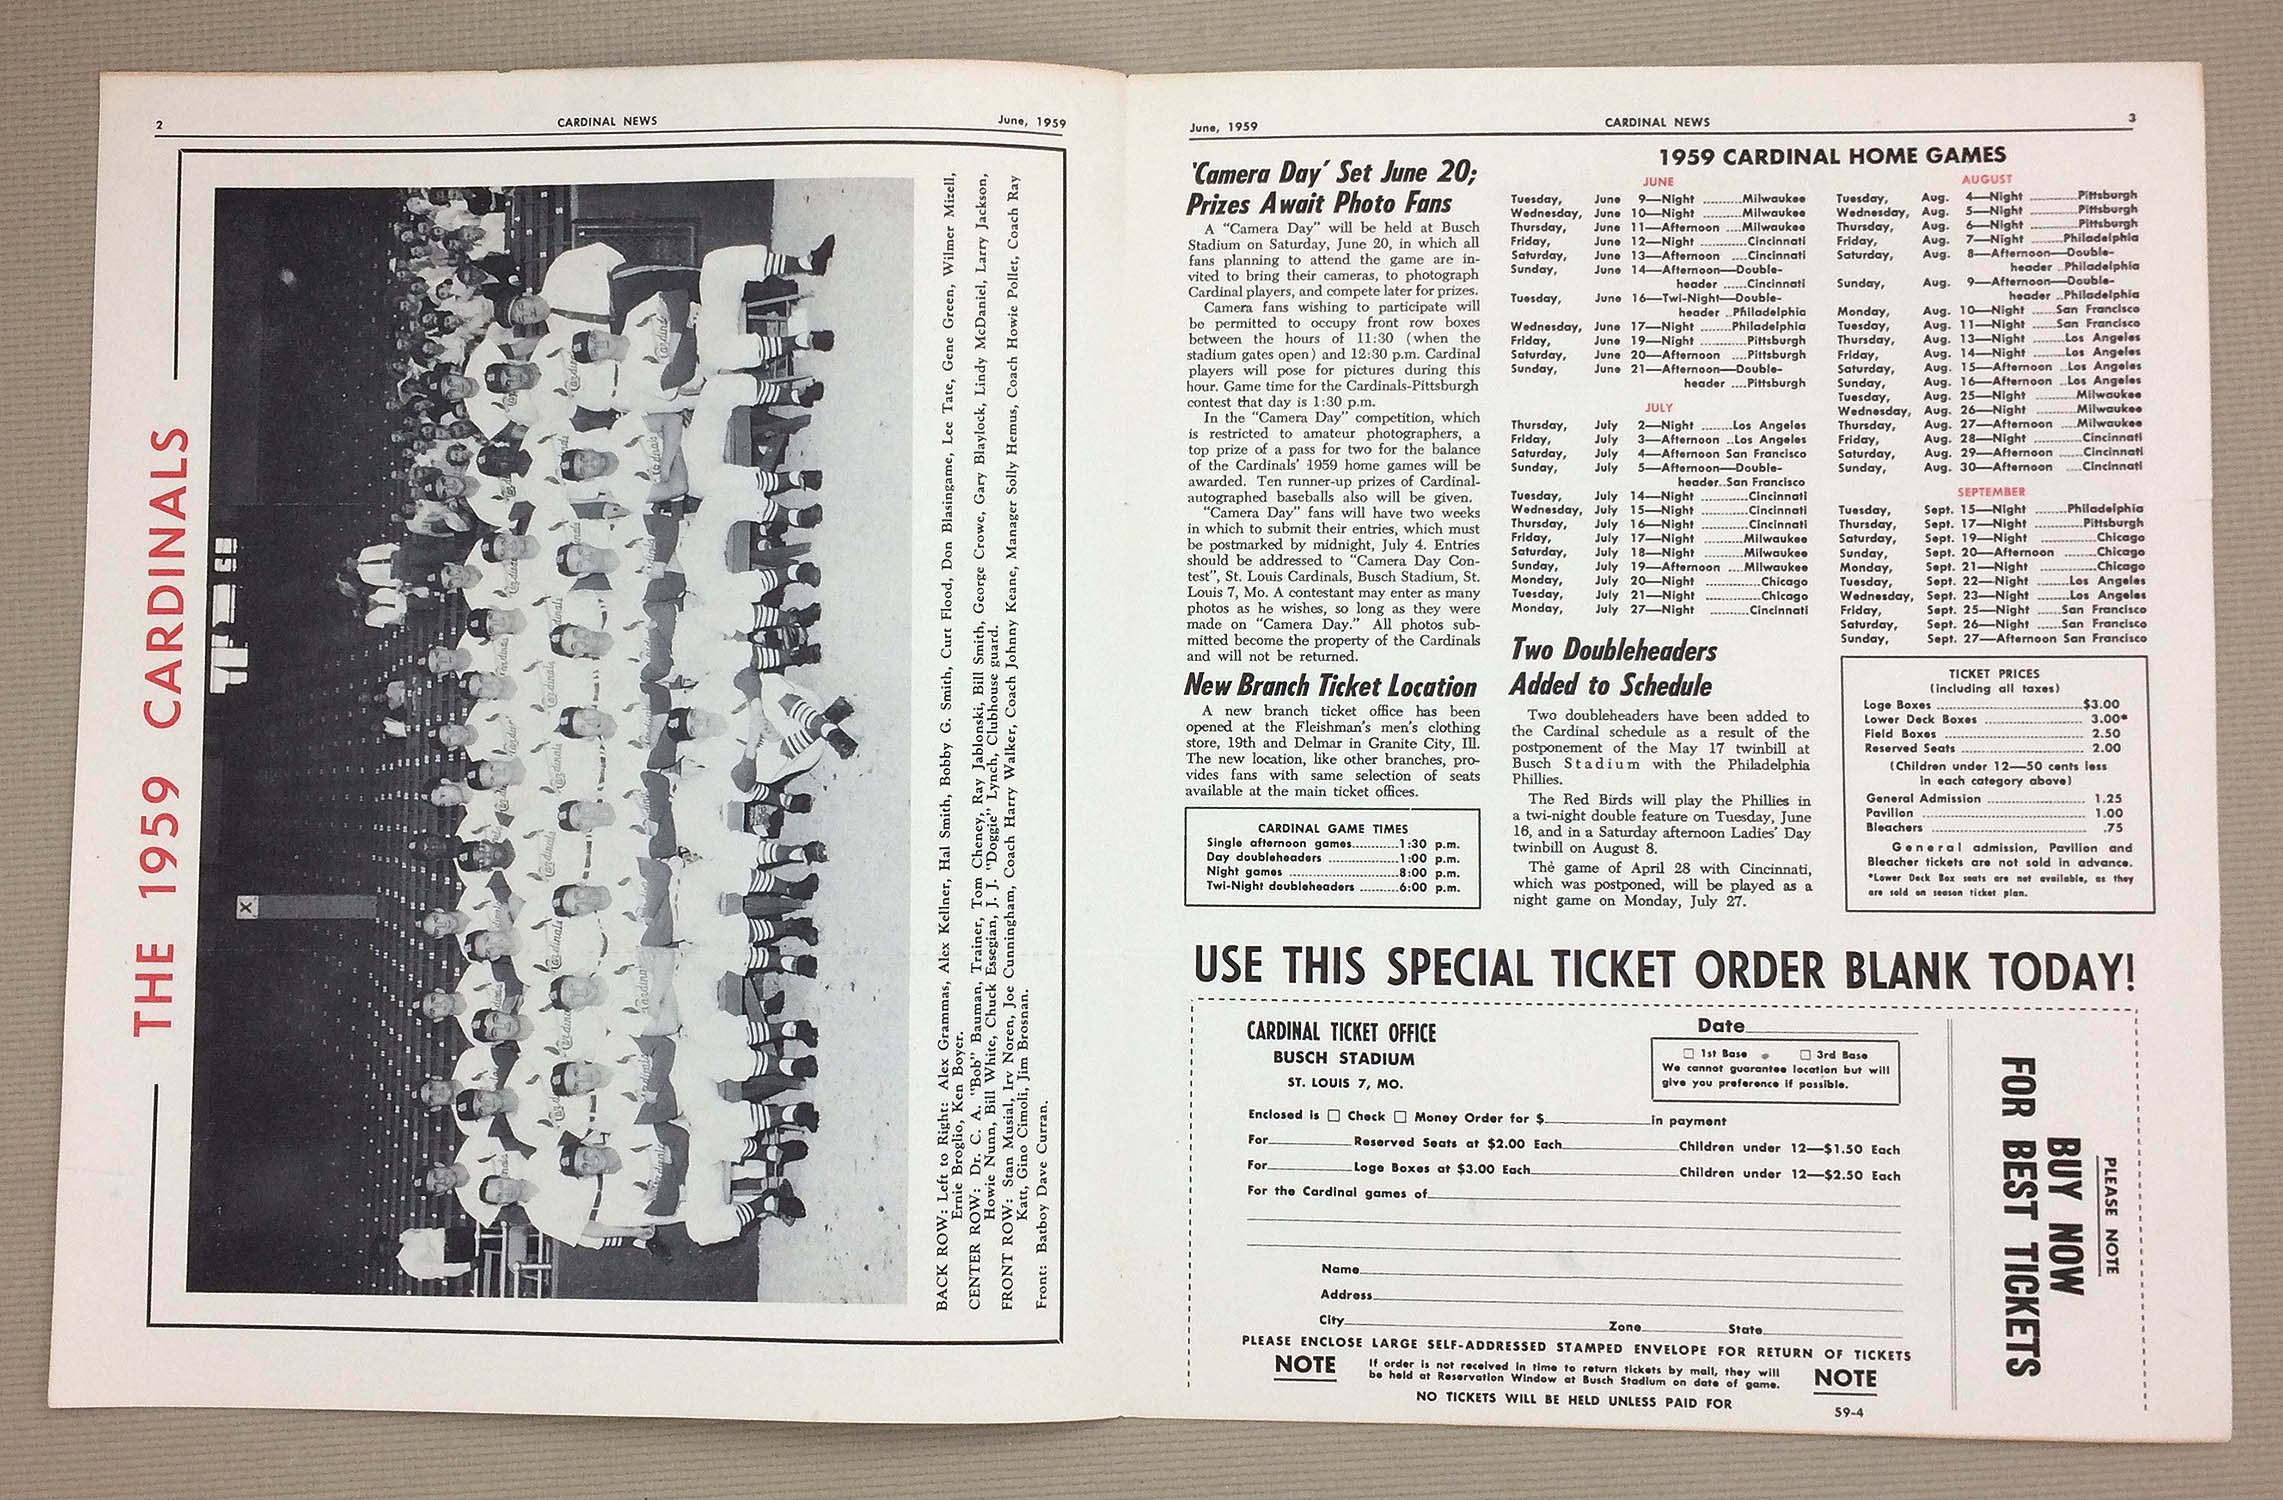 St Louis Cardinals Newsletters 1959